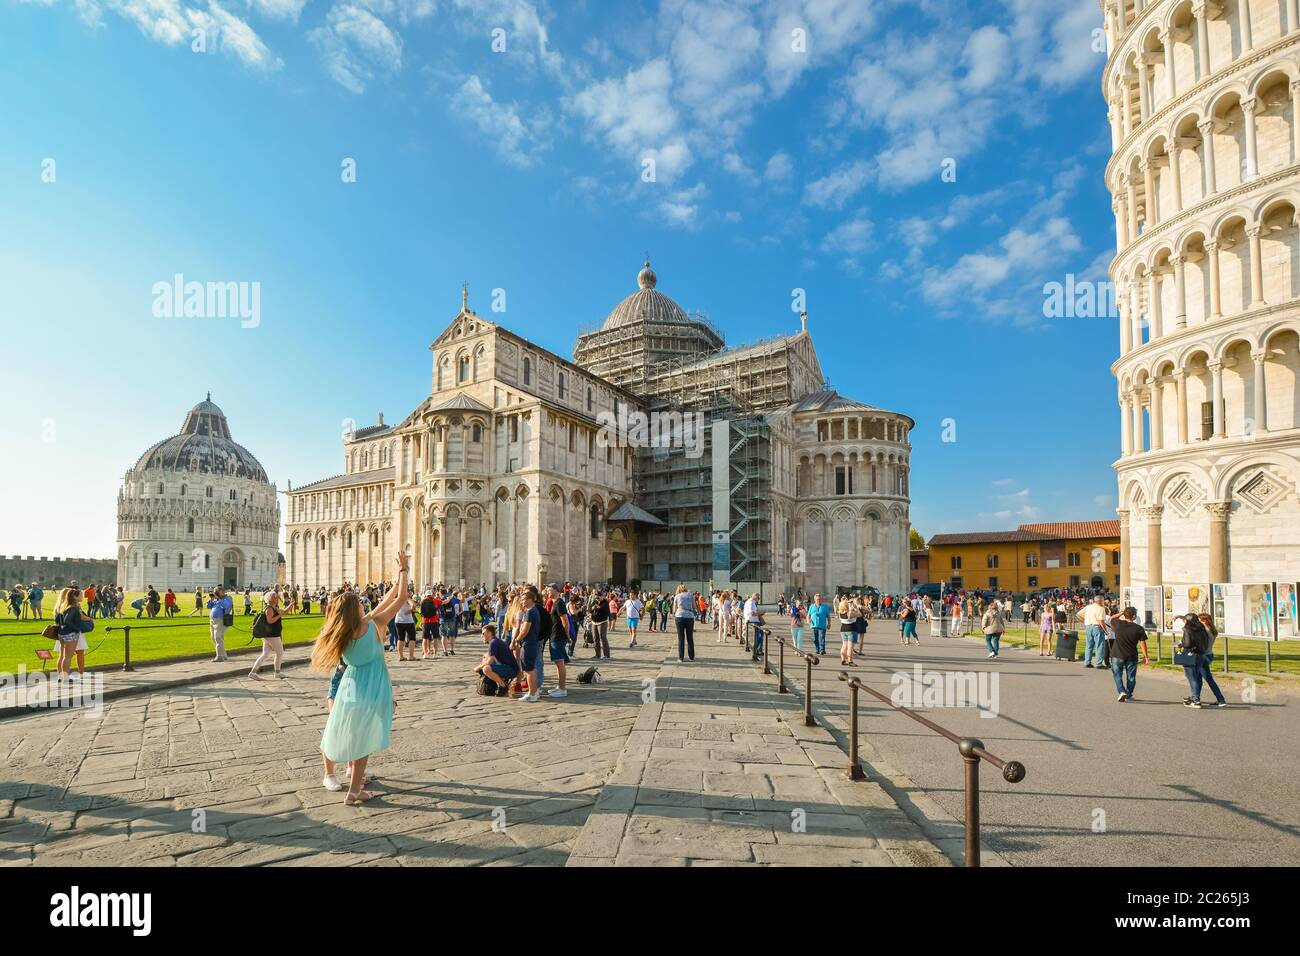 A female tourist poses in front of the Leaning Tower of Pisa with the Cathedral and Baptistery in view, Square of Miracles in Pisa, Italy. Stock Photo